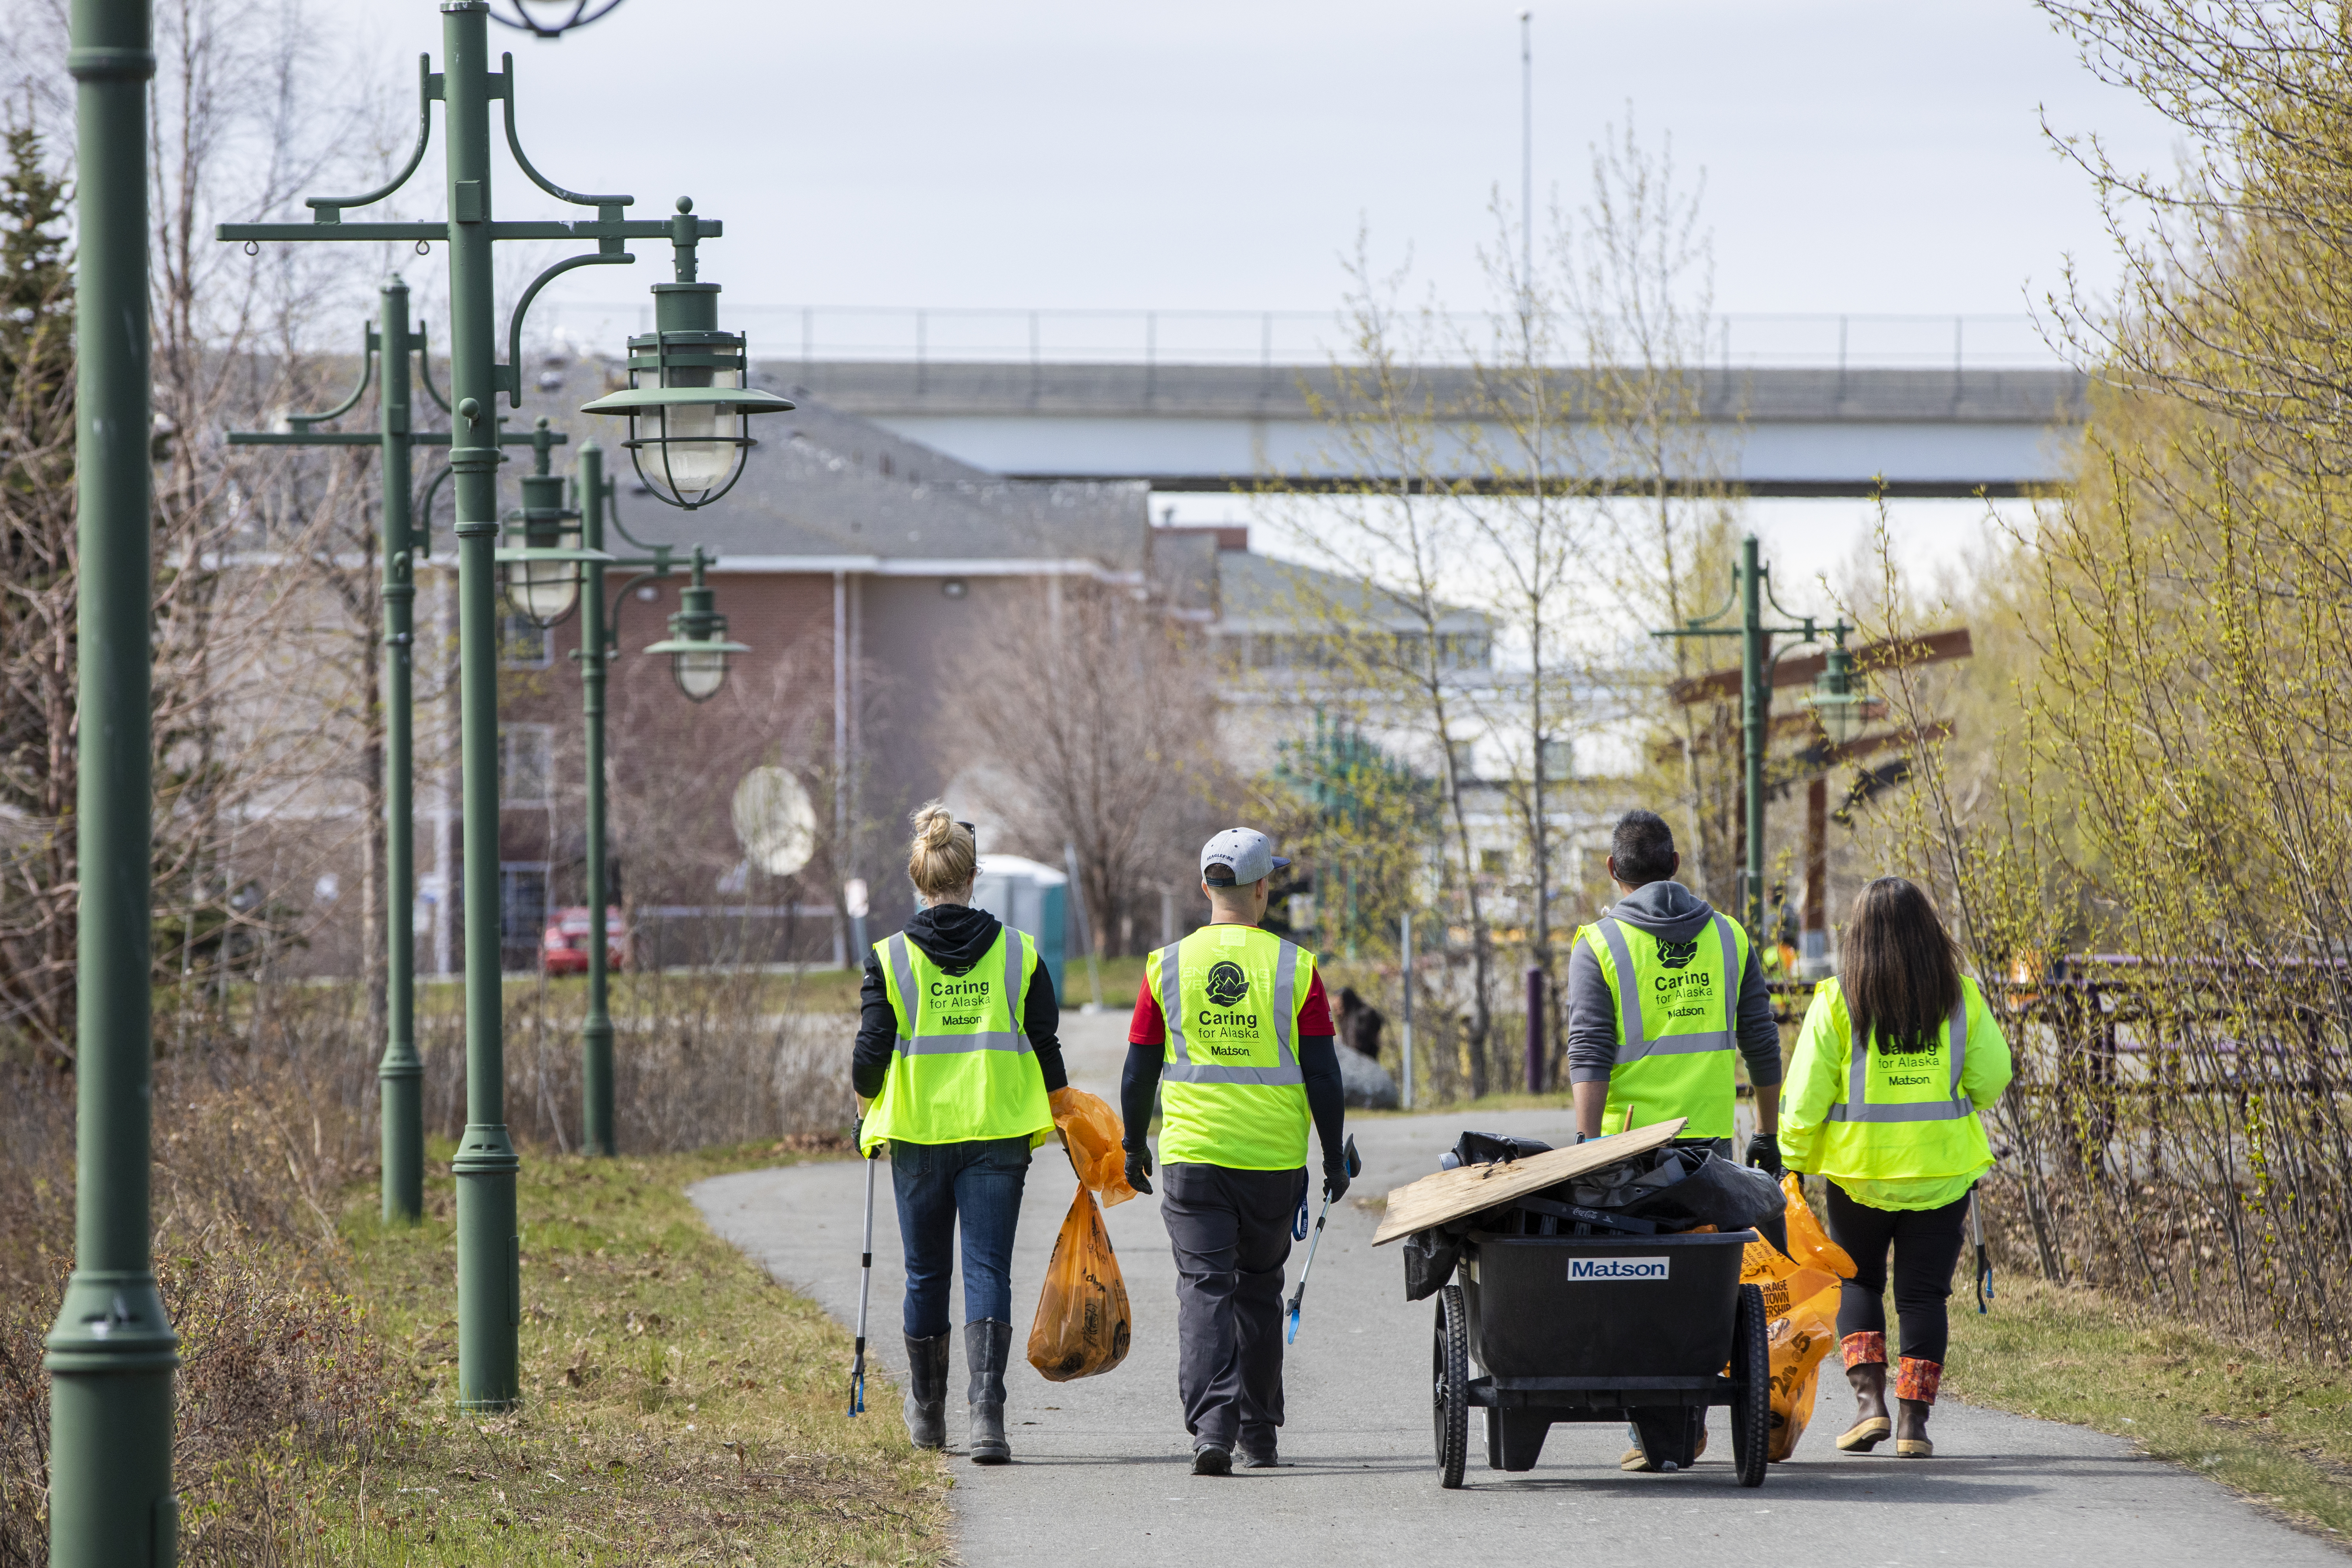 Volunteers wearing yellow safety vests walk along Ship Creek with a cart and orange bags full of trash.